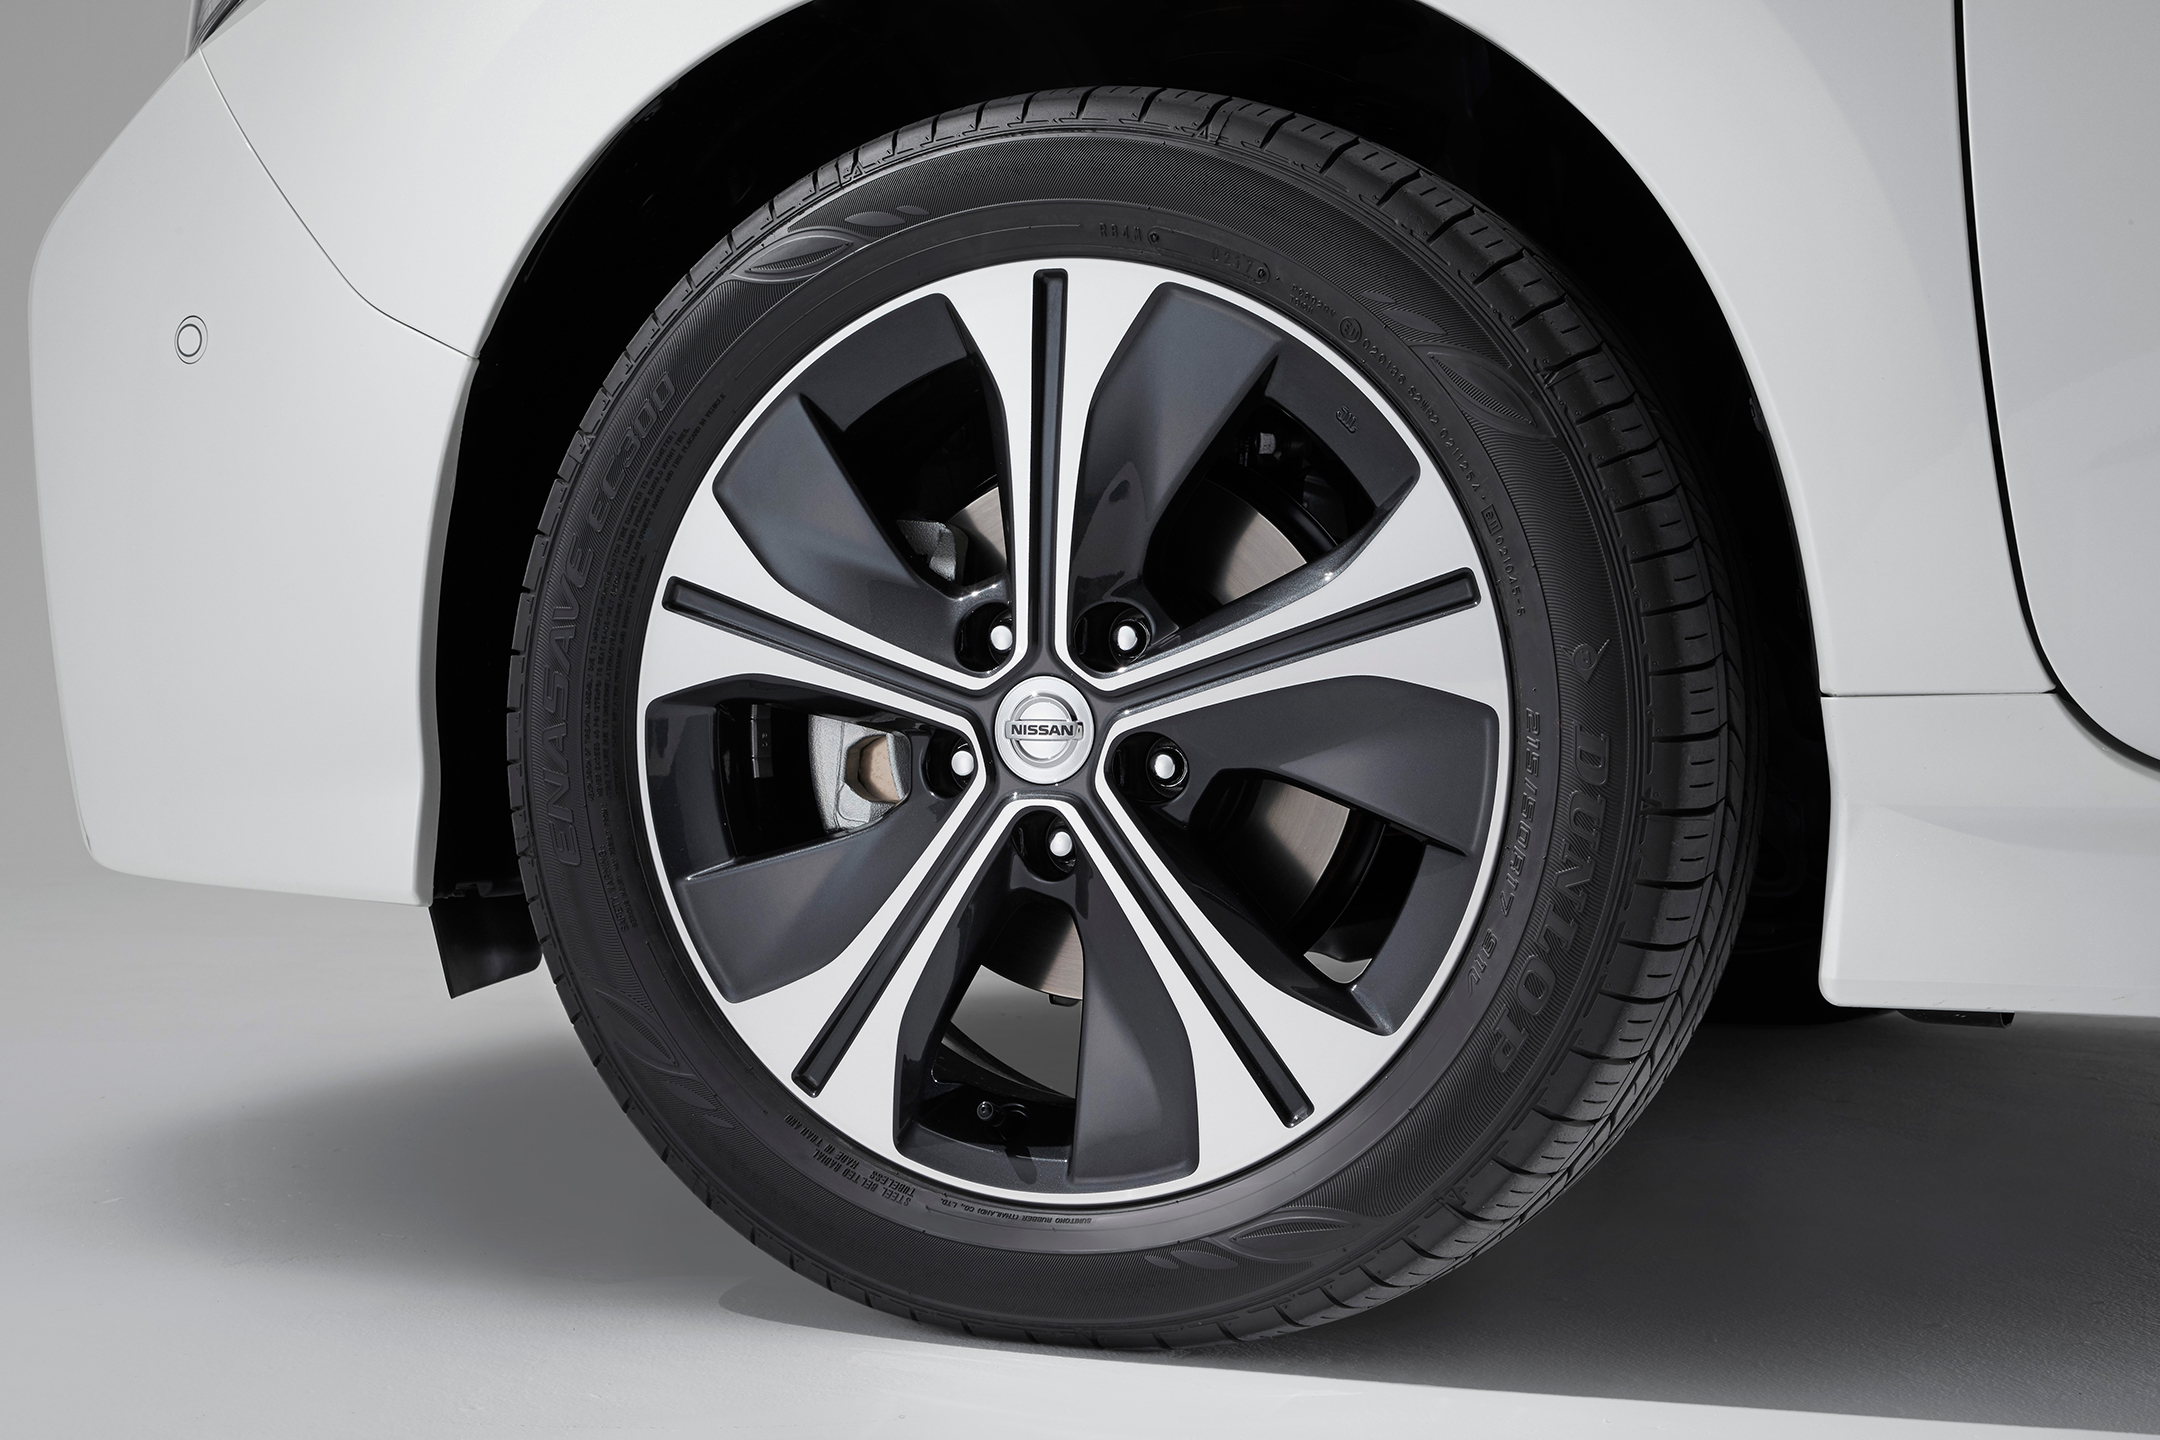 Nissan LEAF 2.0 - 2017 - wheel / jante